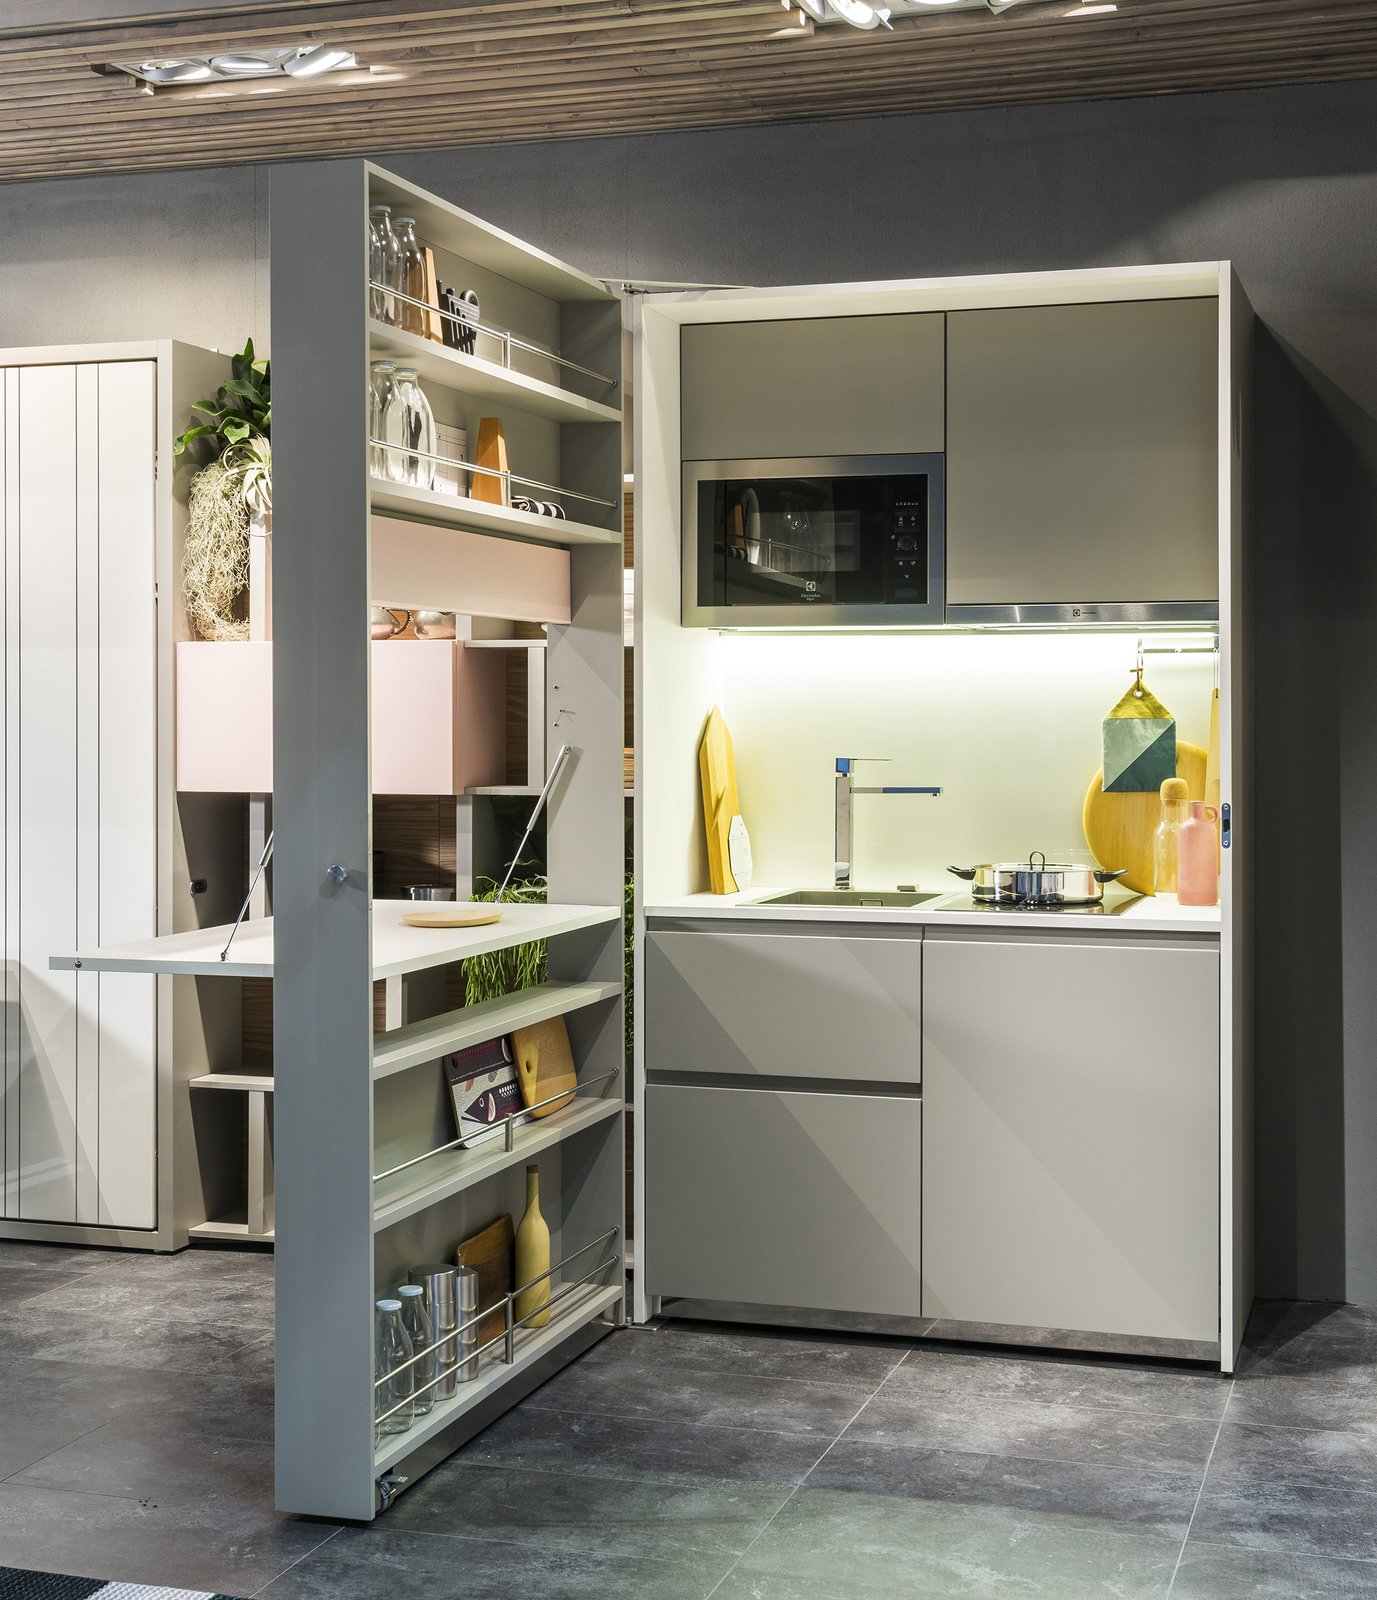 The Box Kitchen contains two burners, a ventilation hood, a sink, a dishwasher, and a microwave. A fold-down laminated countertop creates a prep surface.  Shelves from Genius Unfolding Kitchen Tucks Neatly Into Small Spaces